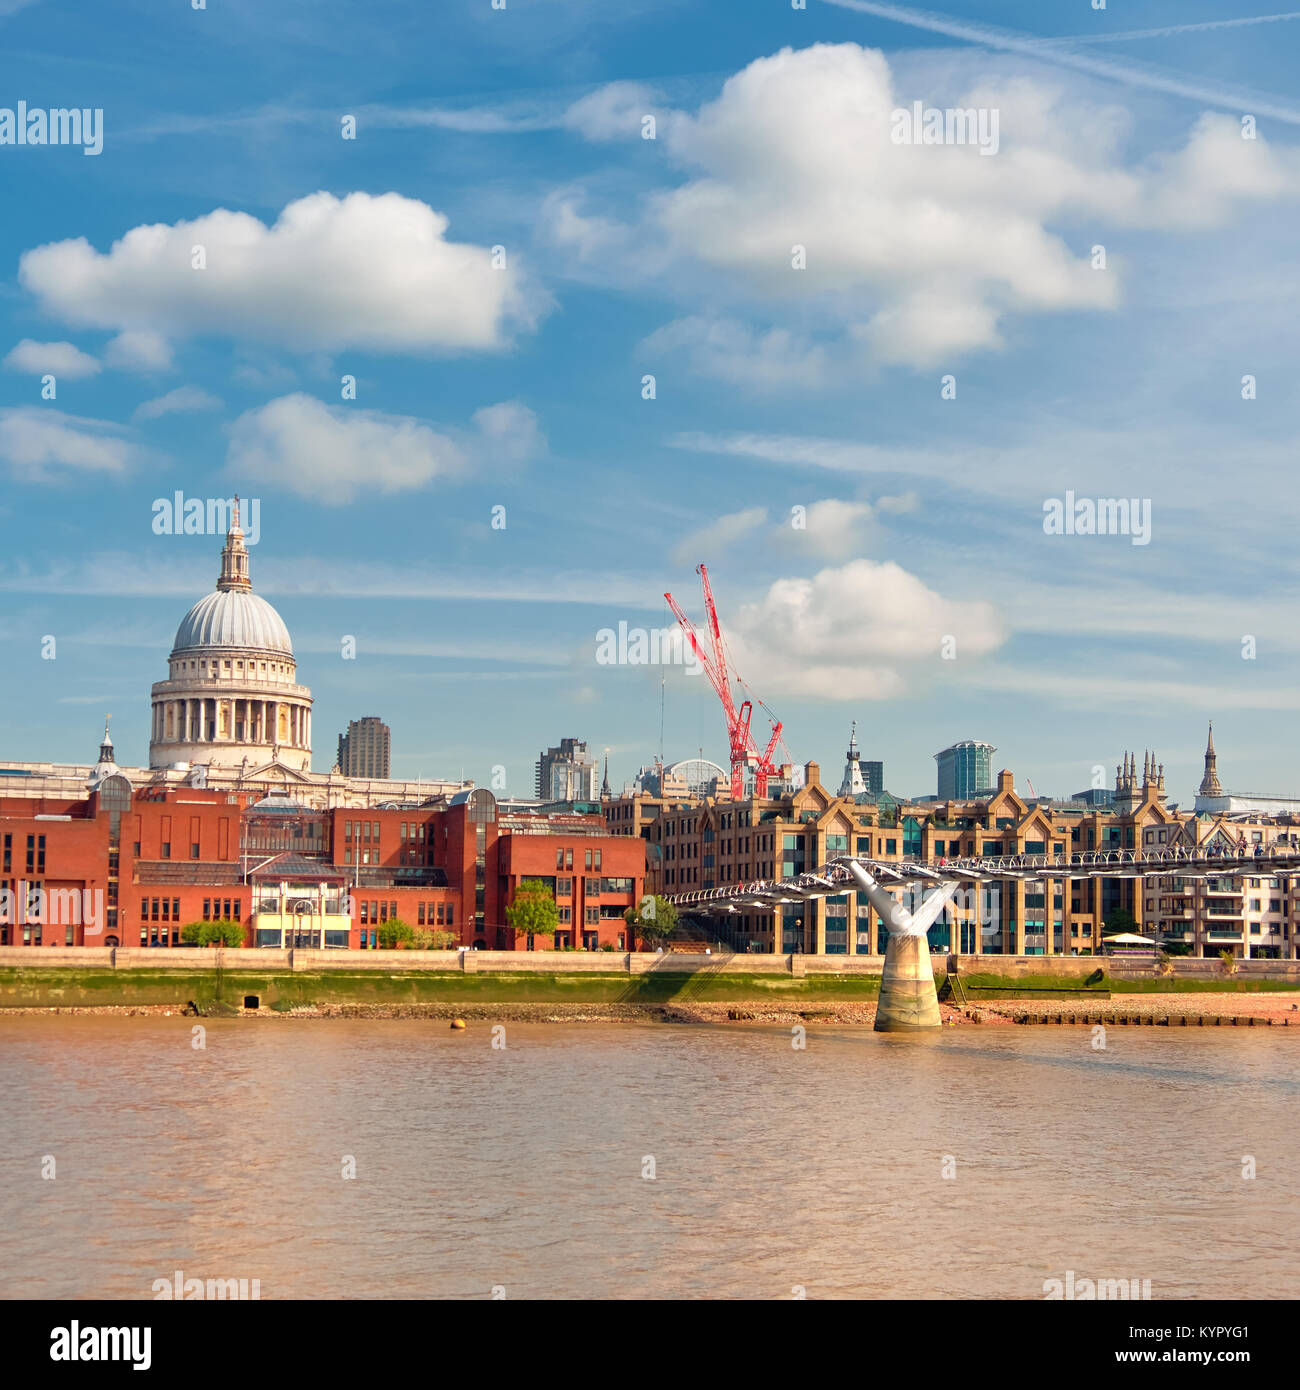 London, river Thames, panoramic image of Millennium bridge and St. Paul on a bright sunny day. Toned image, square - Stock Image